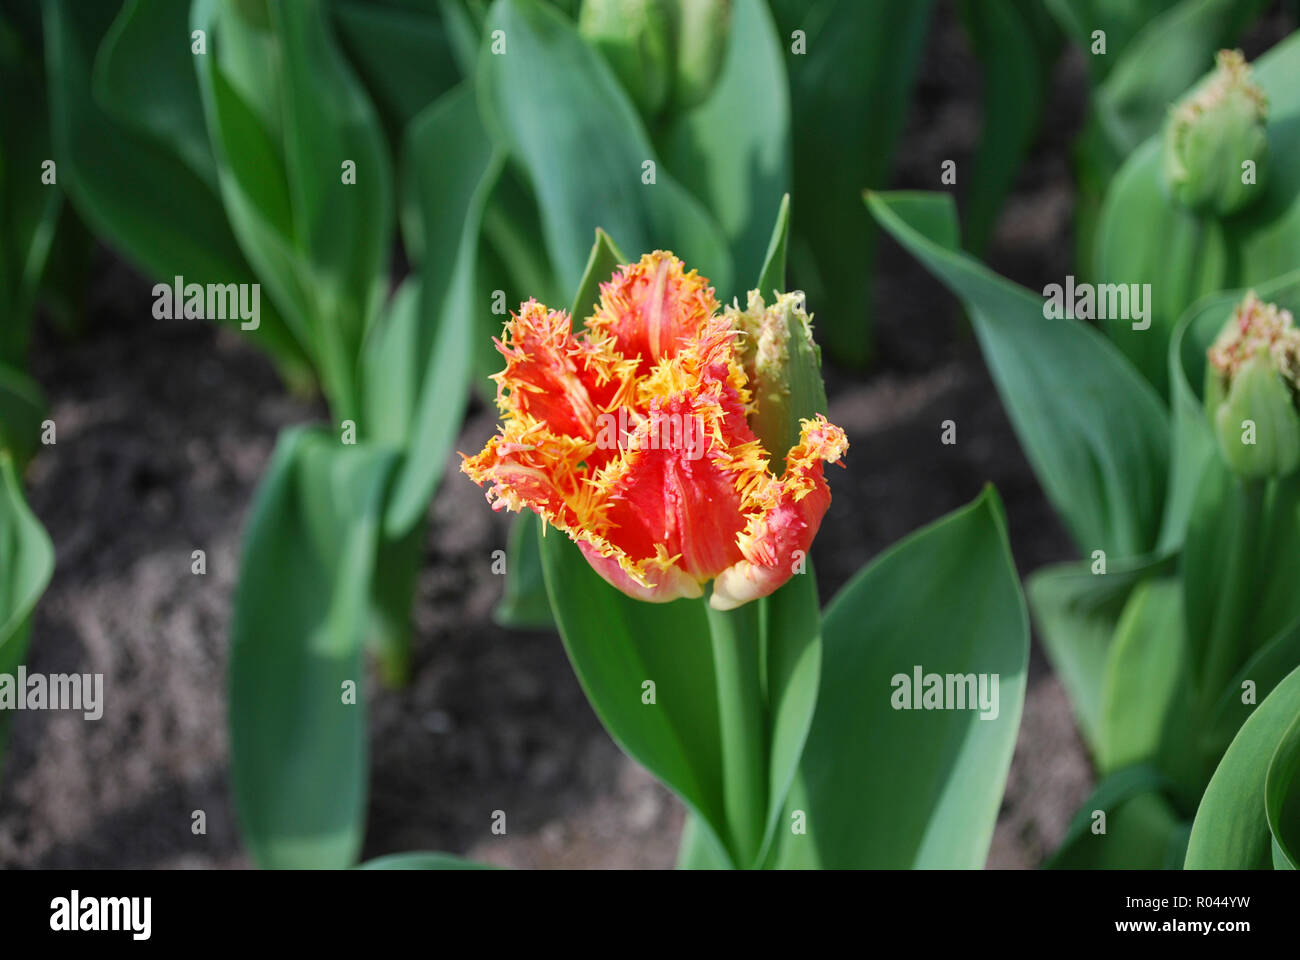 Tulip Joint Devison (Fringed Group) grow in the flowerbed. Spring time in  Netherlands. - Stock Image